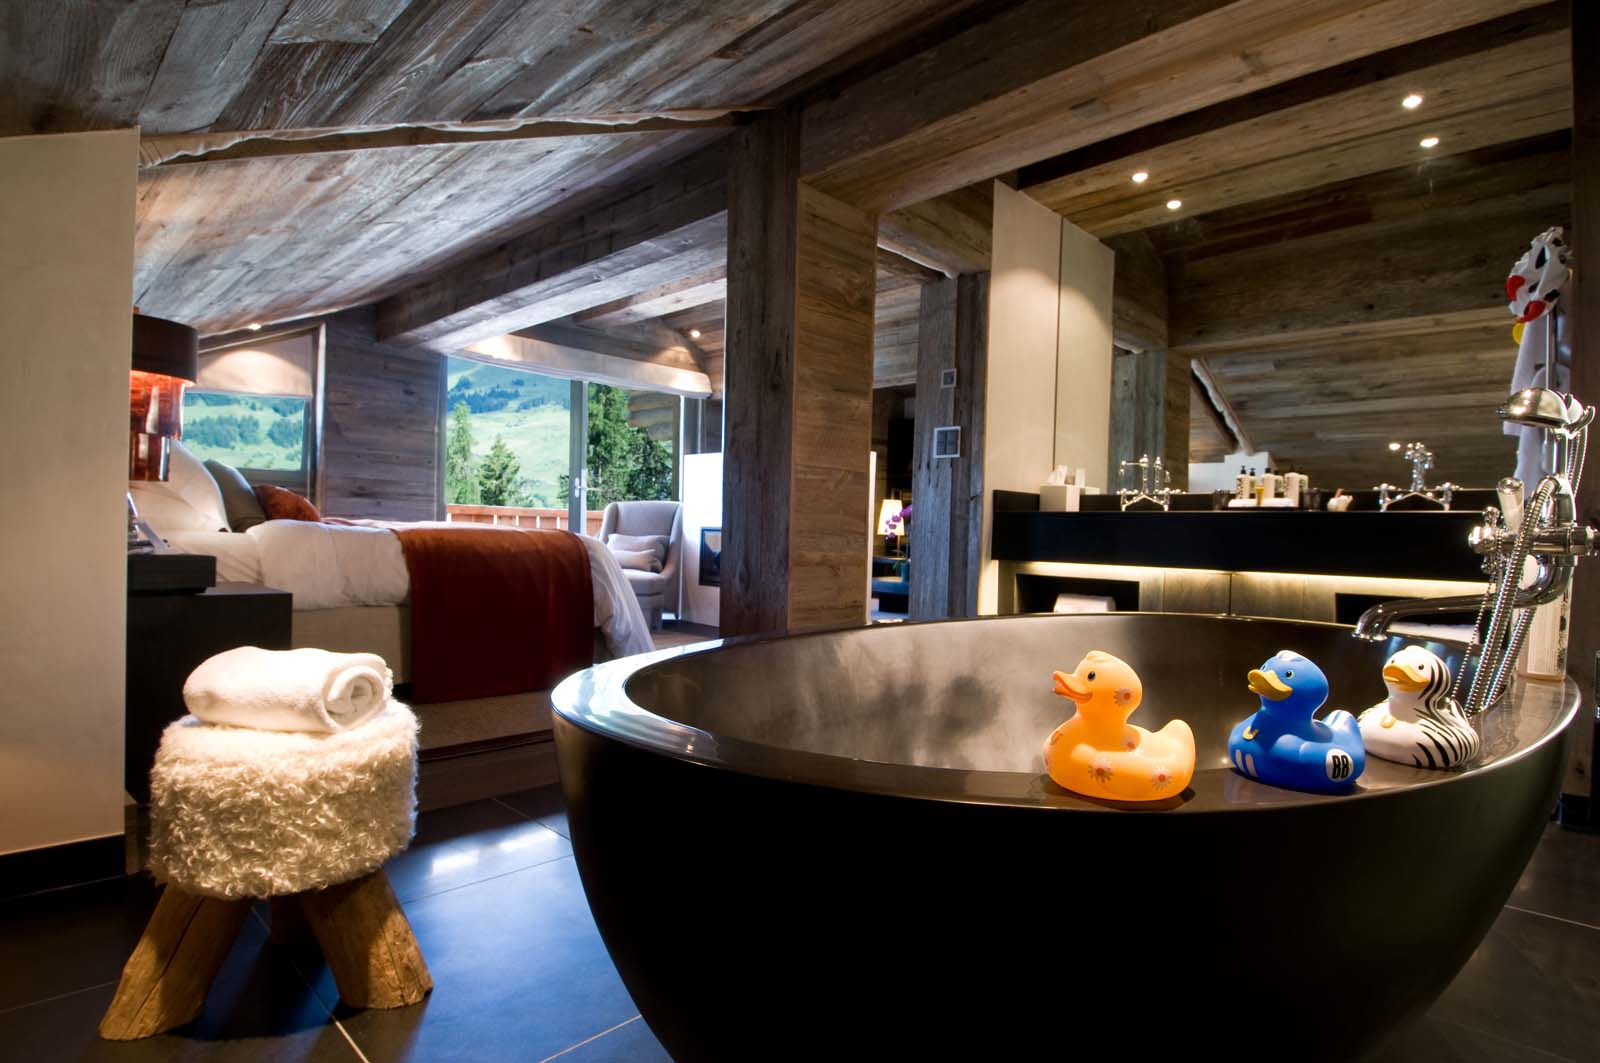 The Lodge In Verbier By Skiboutique